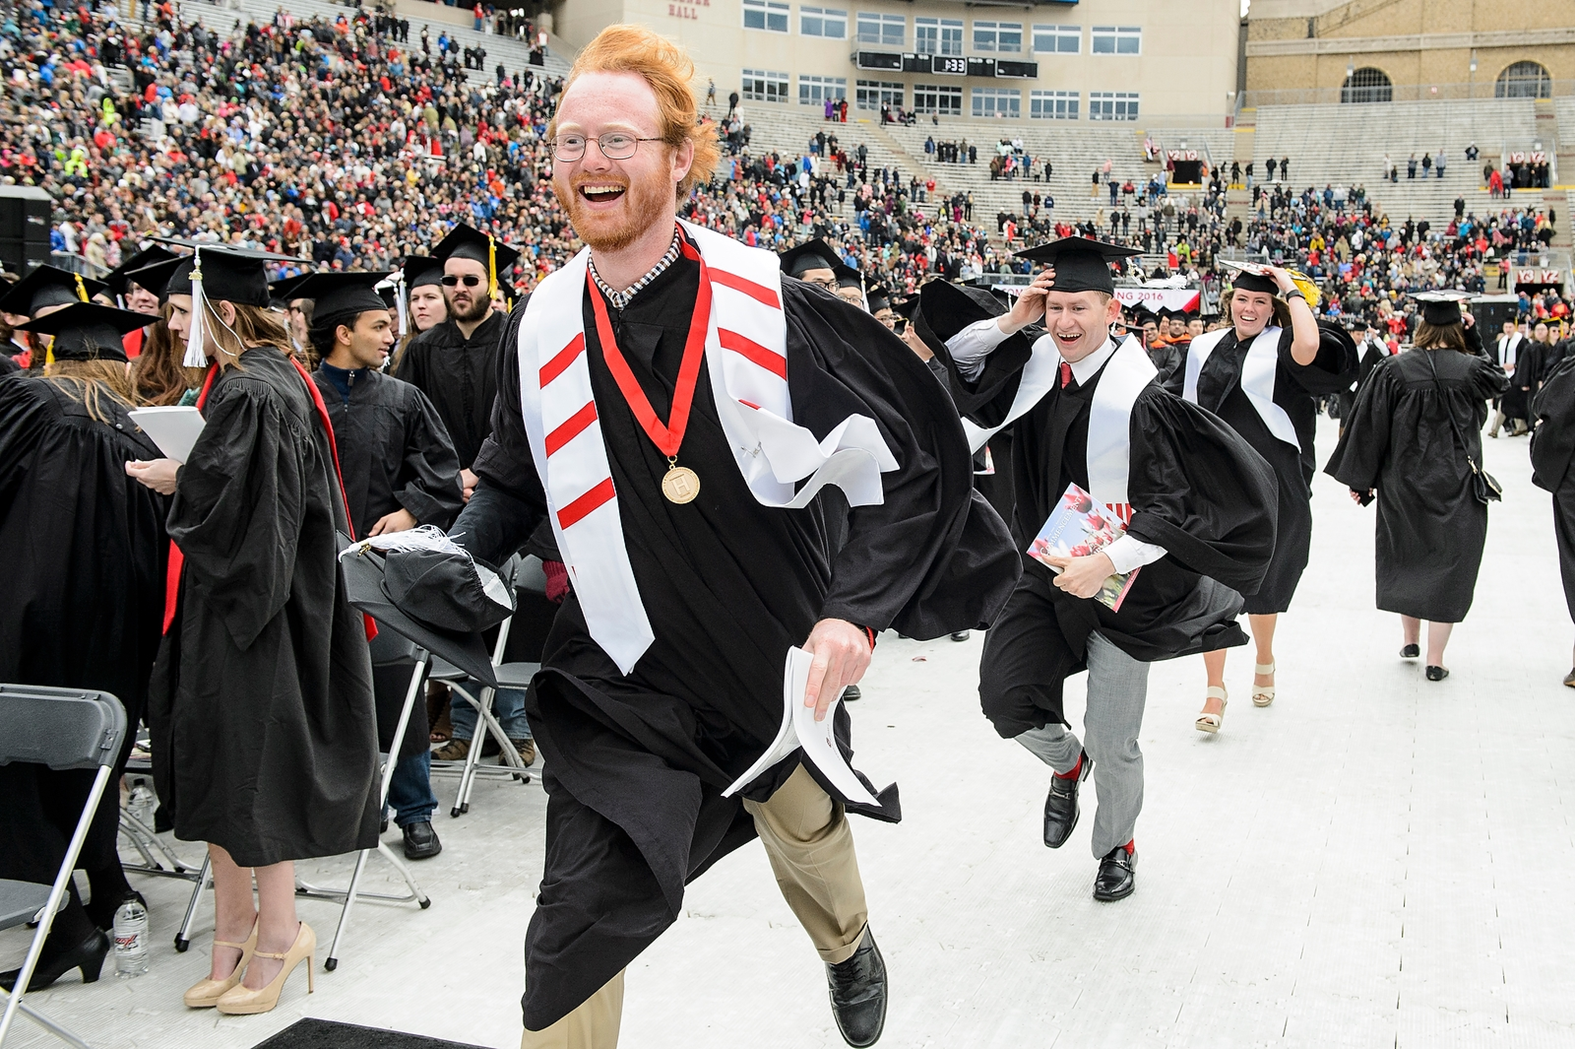 James Holden, Comprehensive Honors Candidate, celebrates Commencement at Camp Randall Stadium in May, 2016 wearing his Honors stash and Comprehensive Honors Medallion